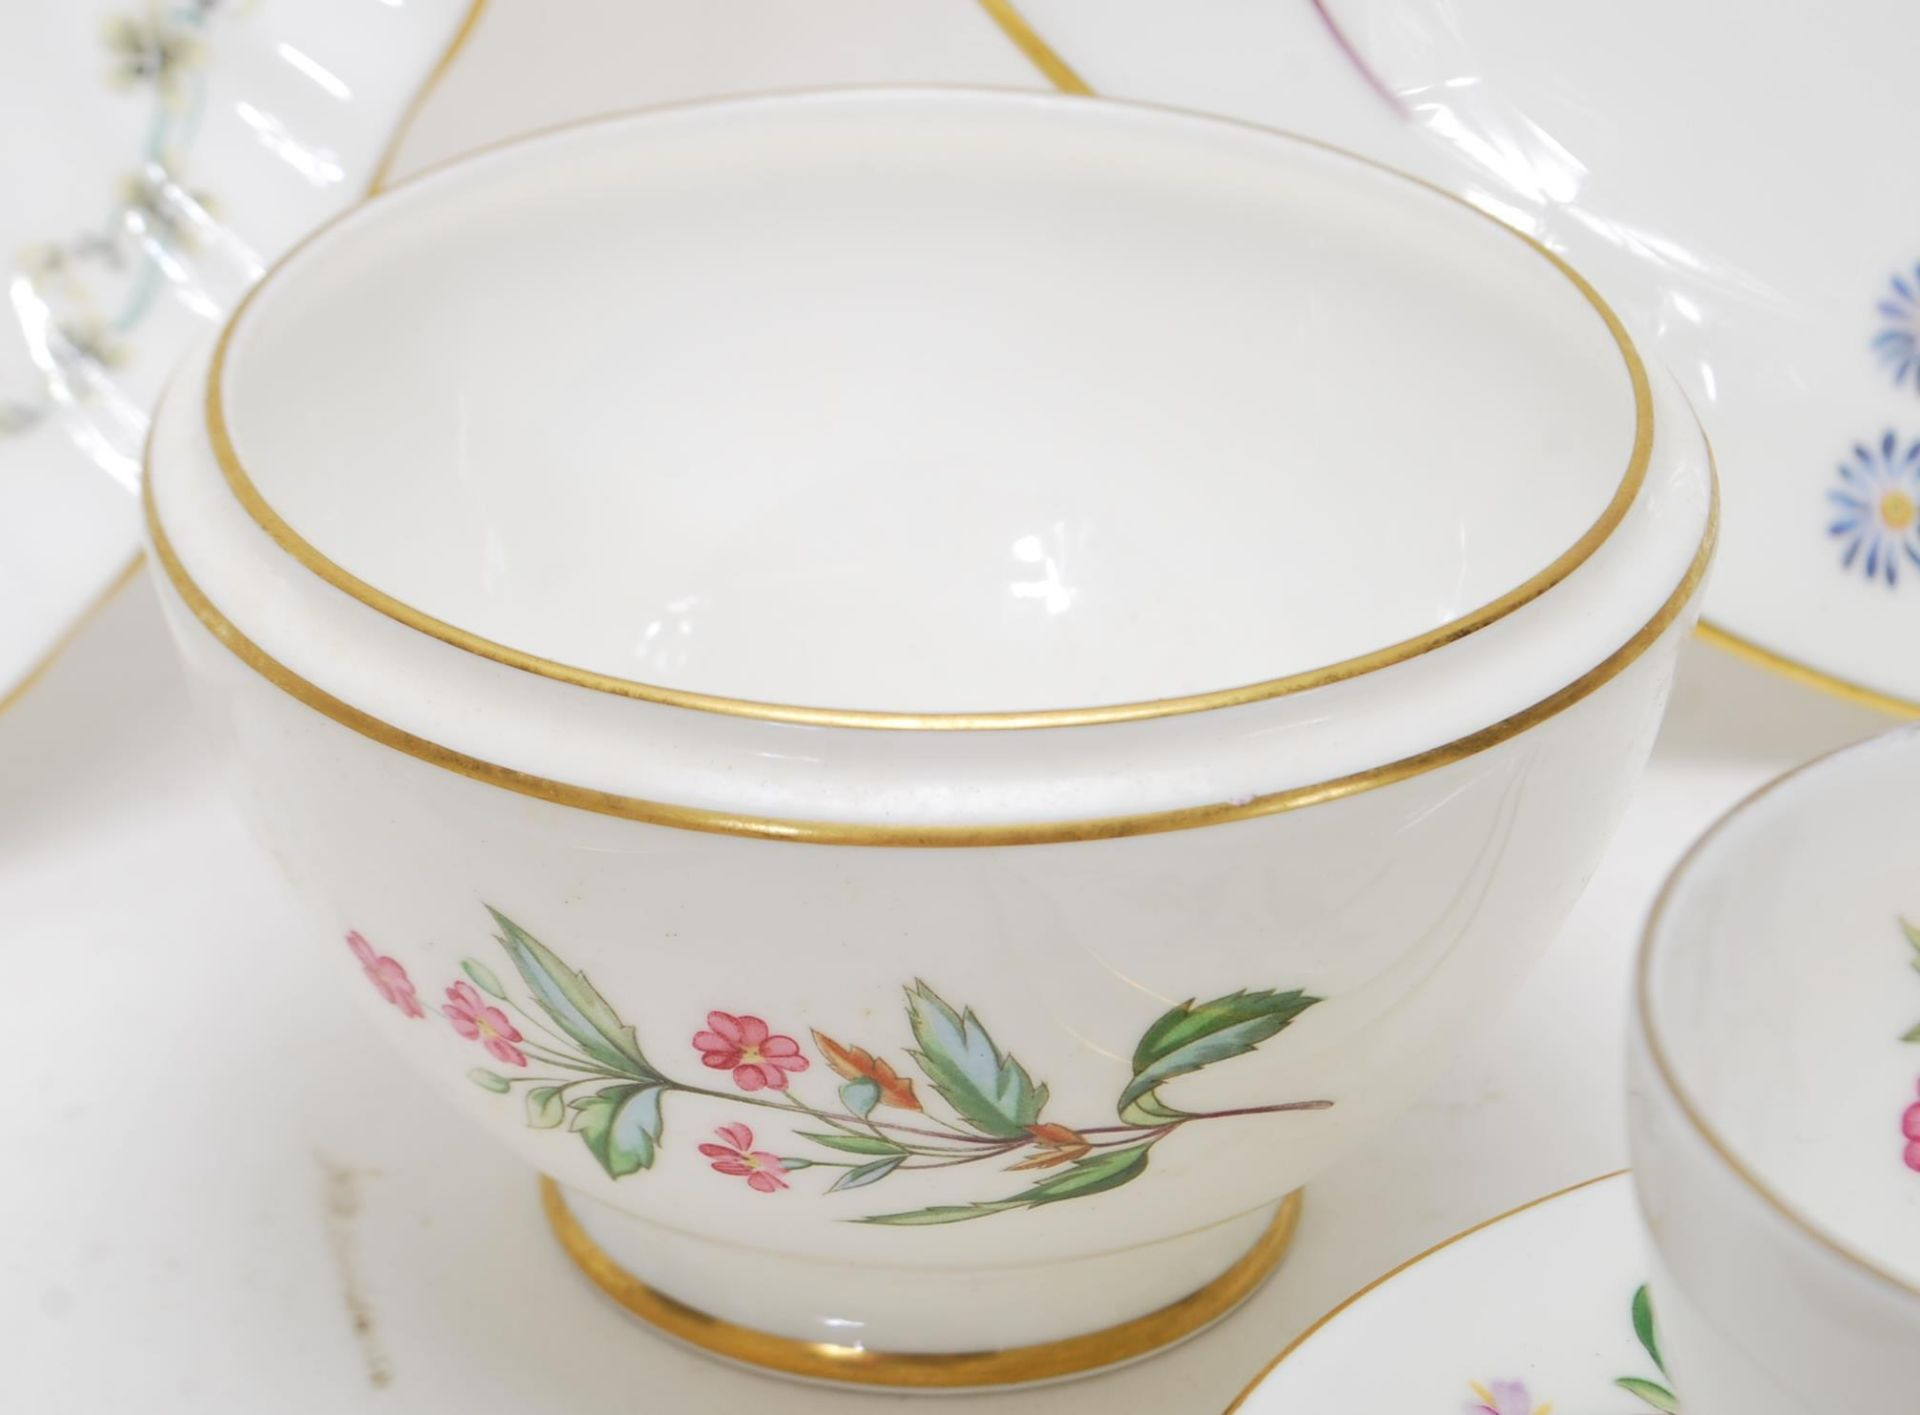 MINTON MEADOW PATTERN BONE CHINA TEA SERVICE - Image 8 of 12